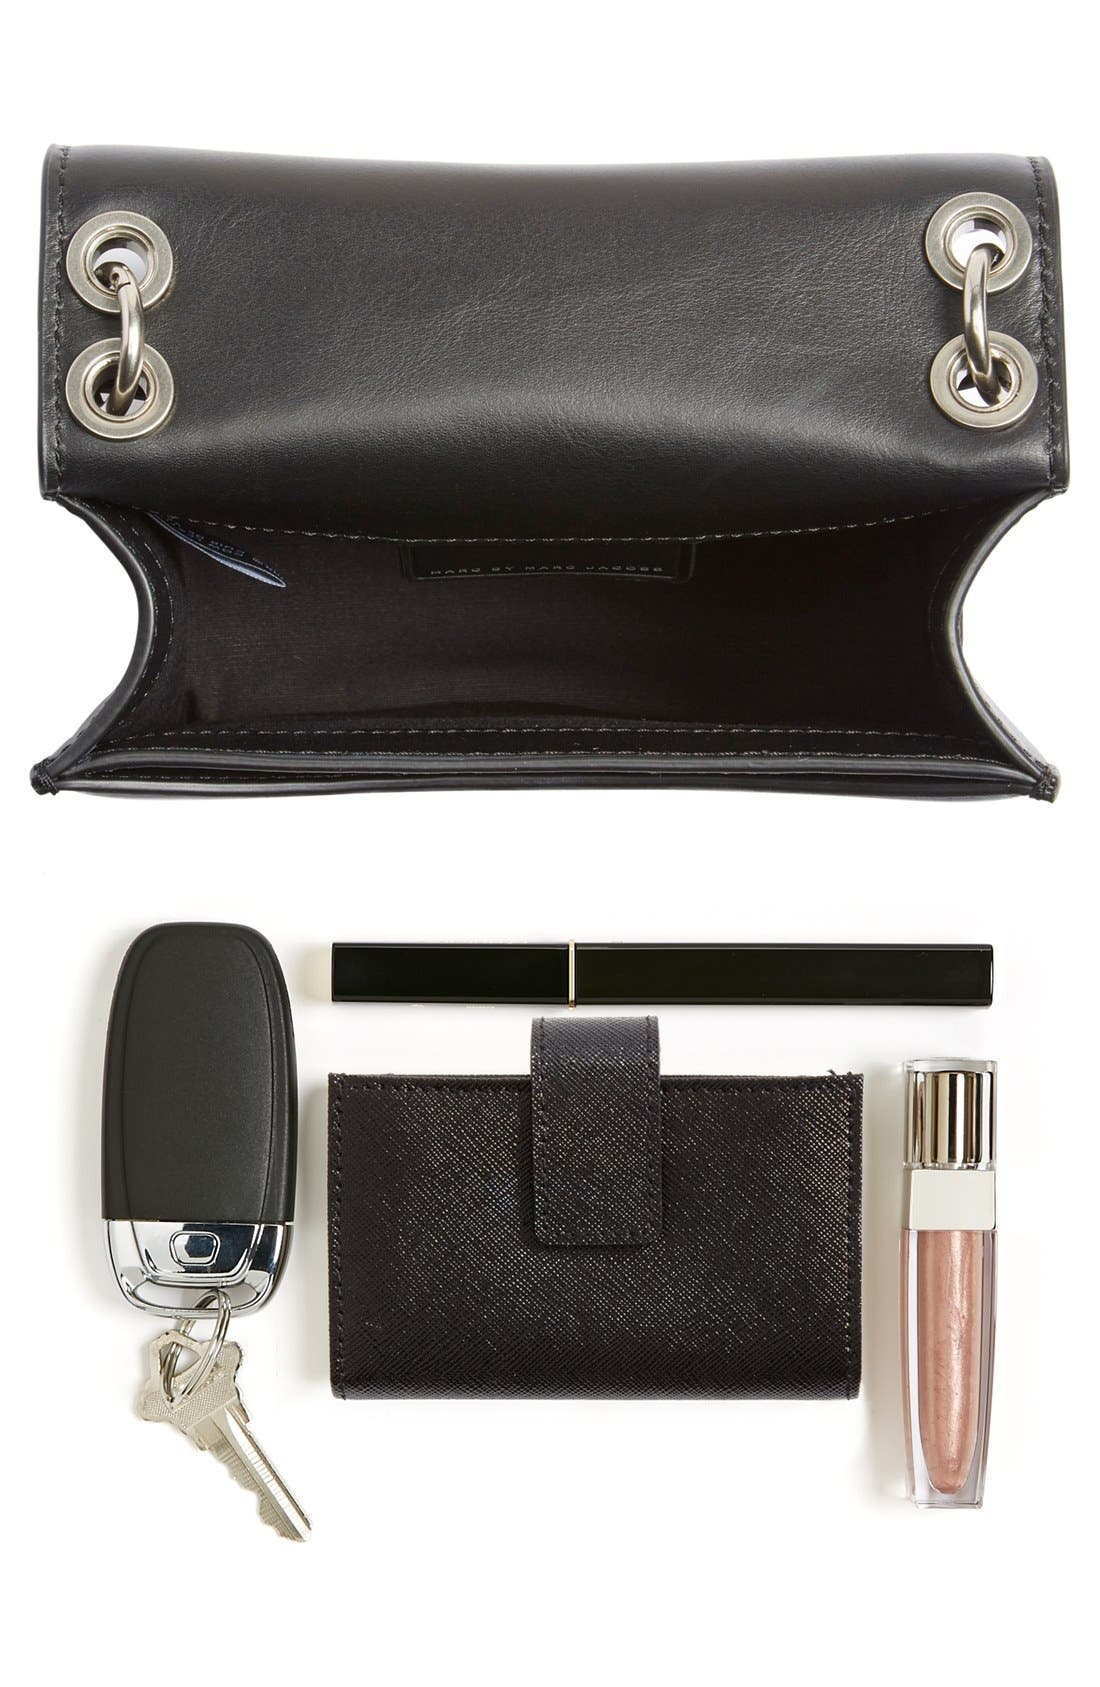 MARC JACOBS,                             MARC BY MARC JACOBS 'The Box' Crossbody Bag,                             Alternate thumbnail 6, color,                             001